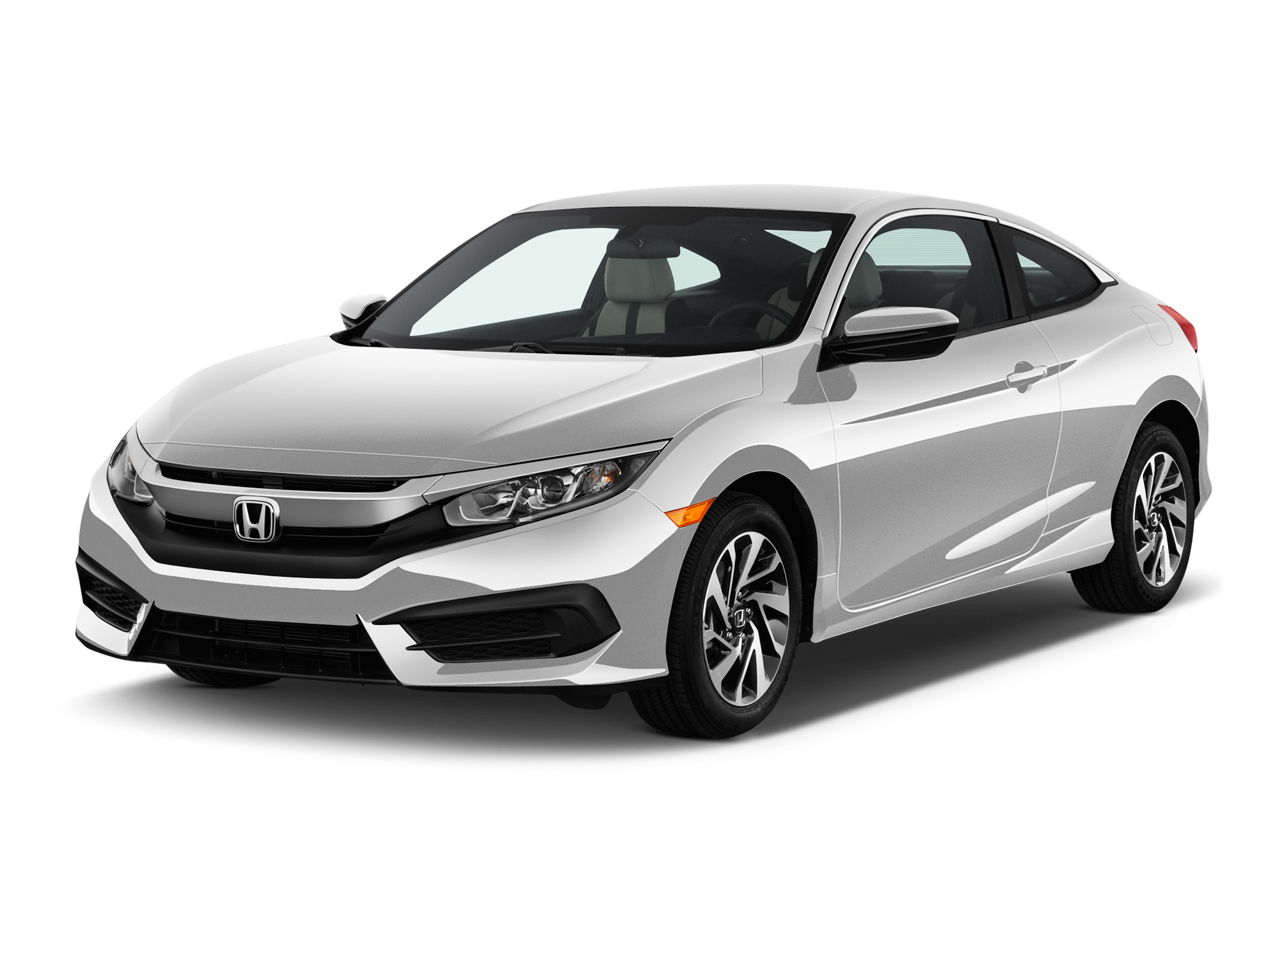 new 2017 honda civic lx p near vacaville ca vacaville honda. Black Bedroom Furniture Sets. Home Design Ideas